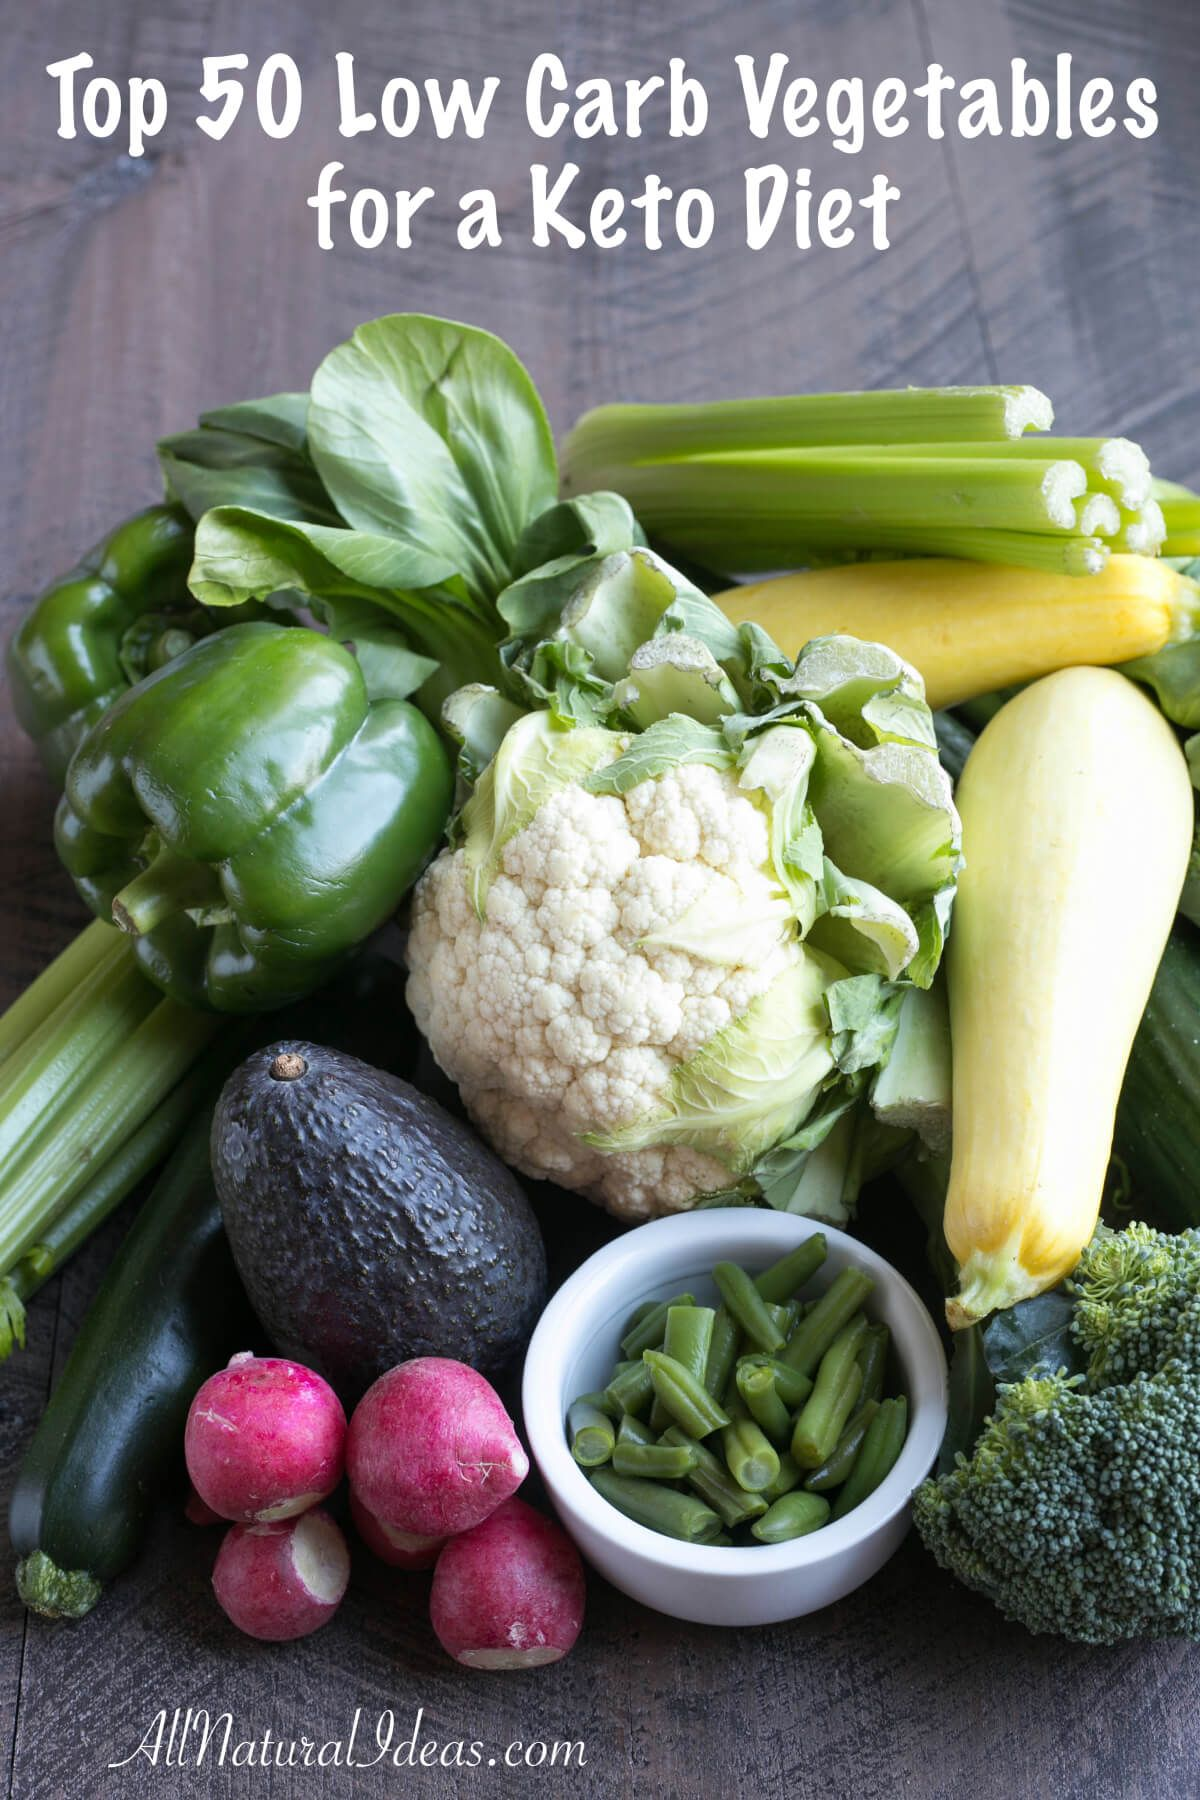 Do you know which vegetables are best to eat while